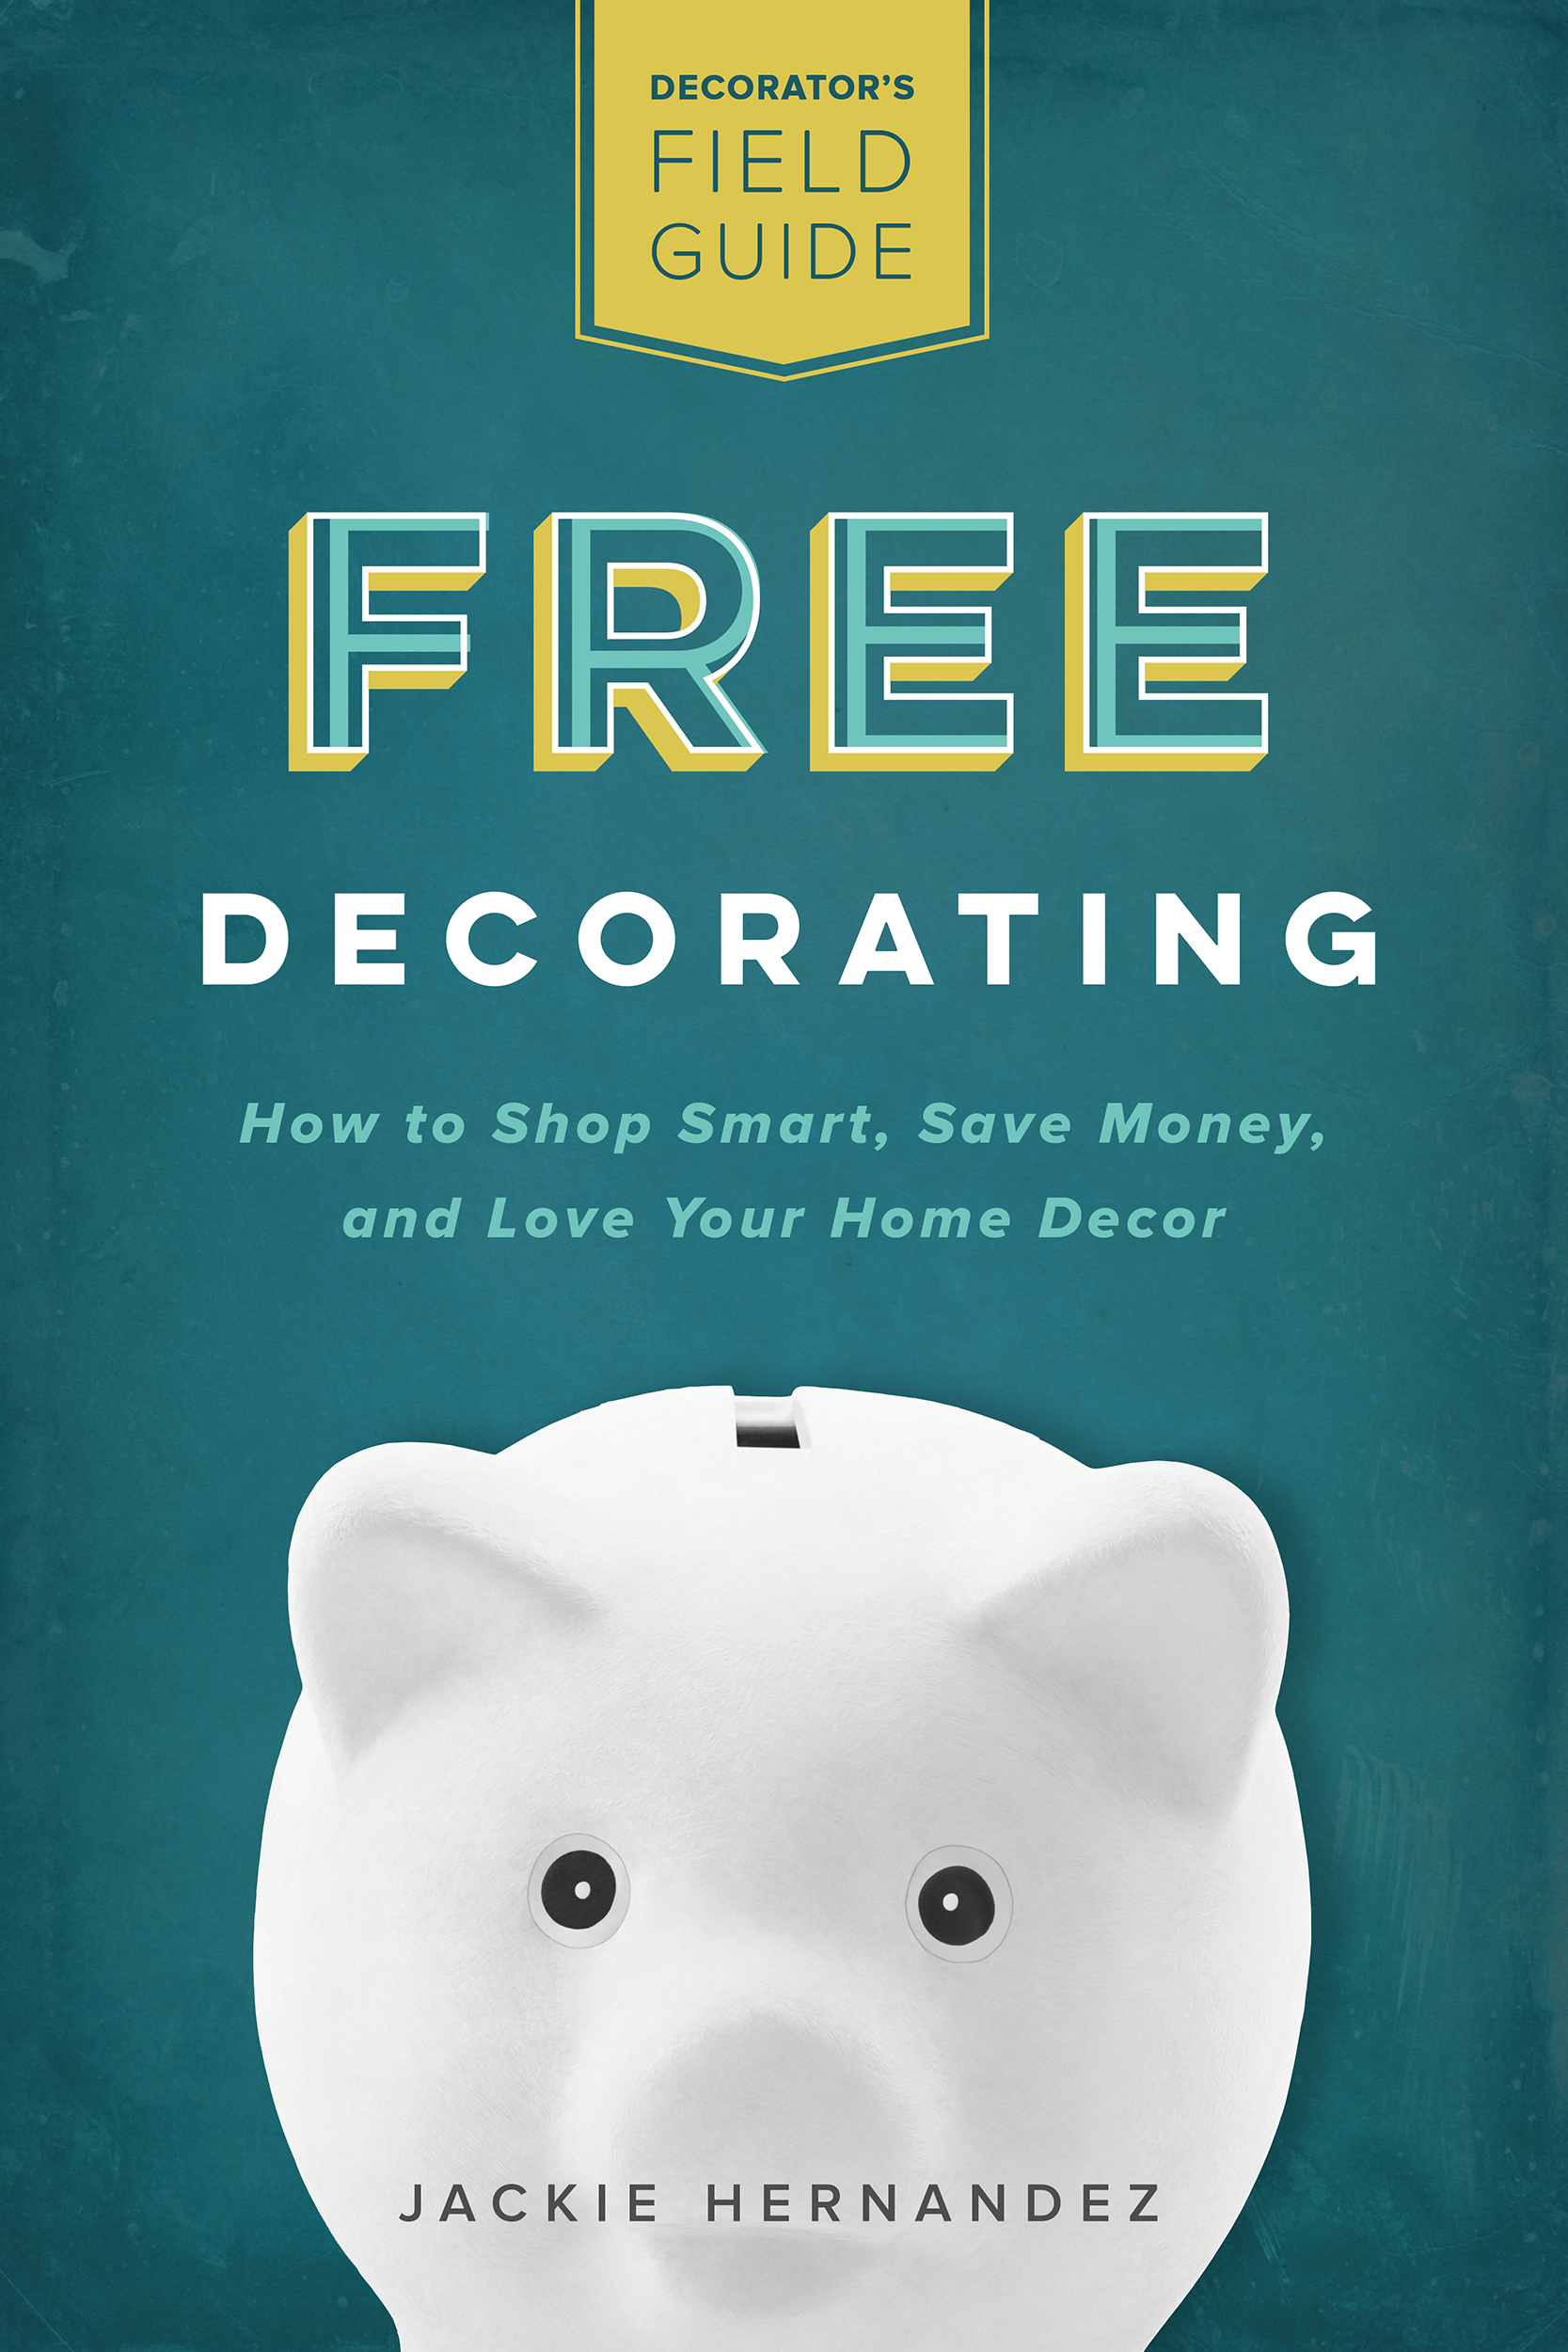 Free Decorating